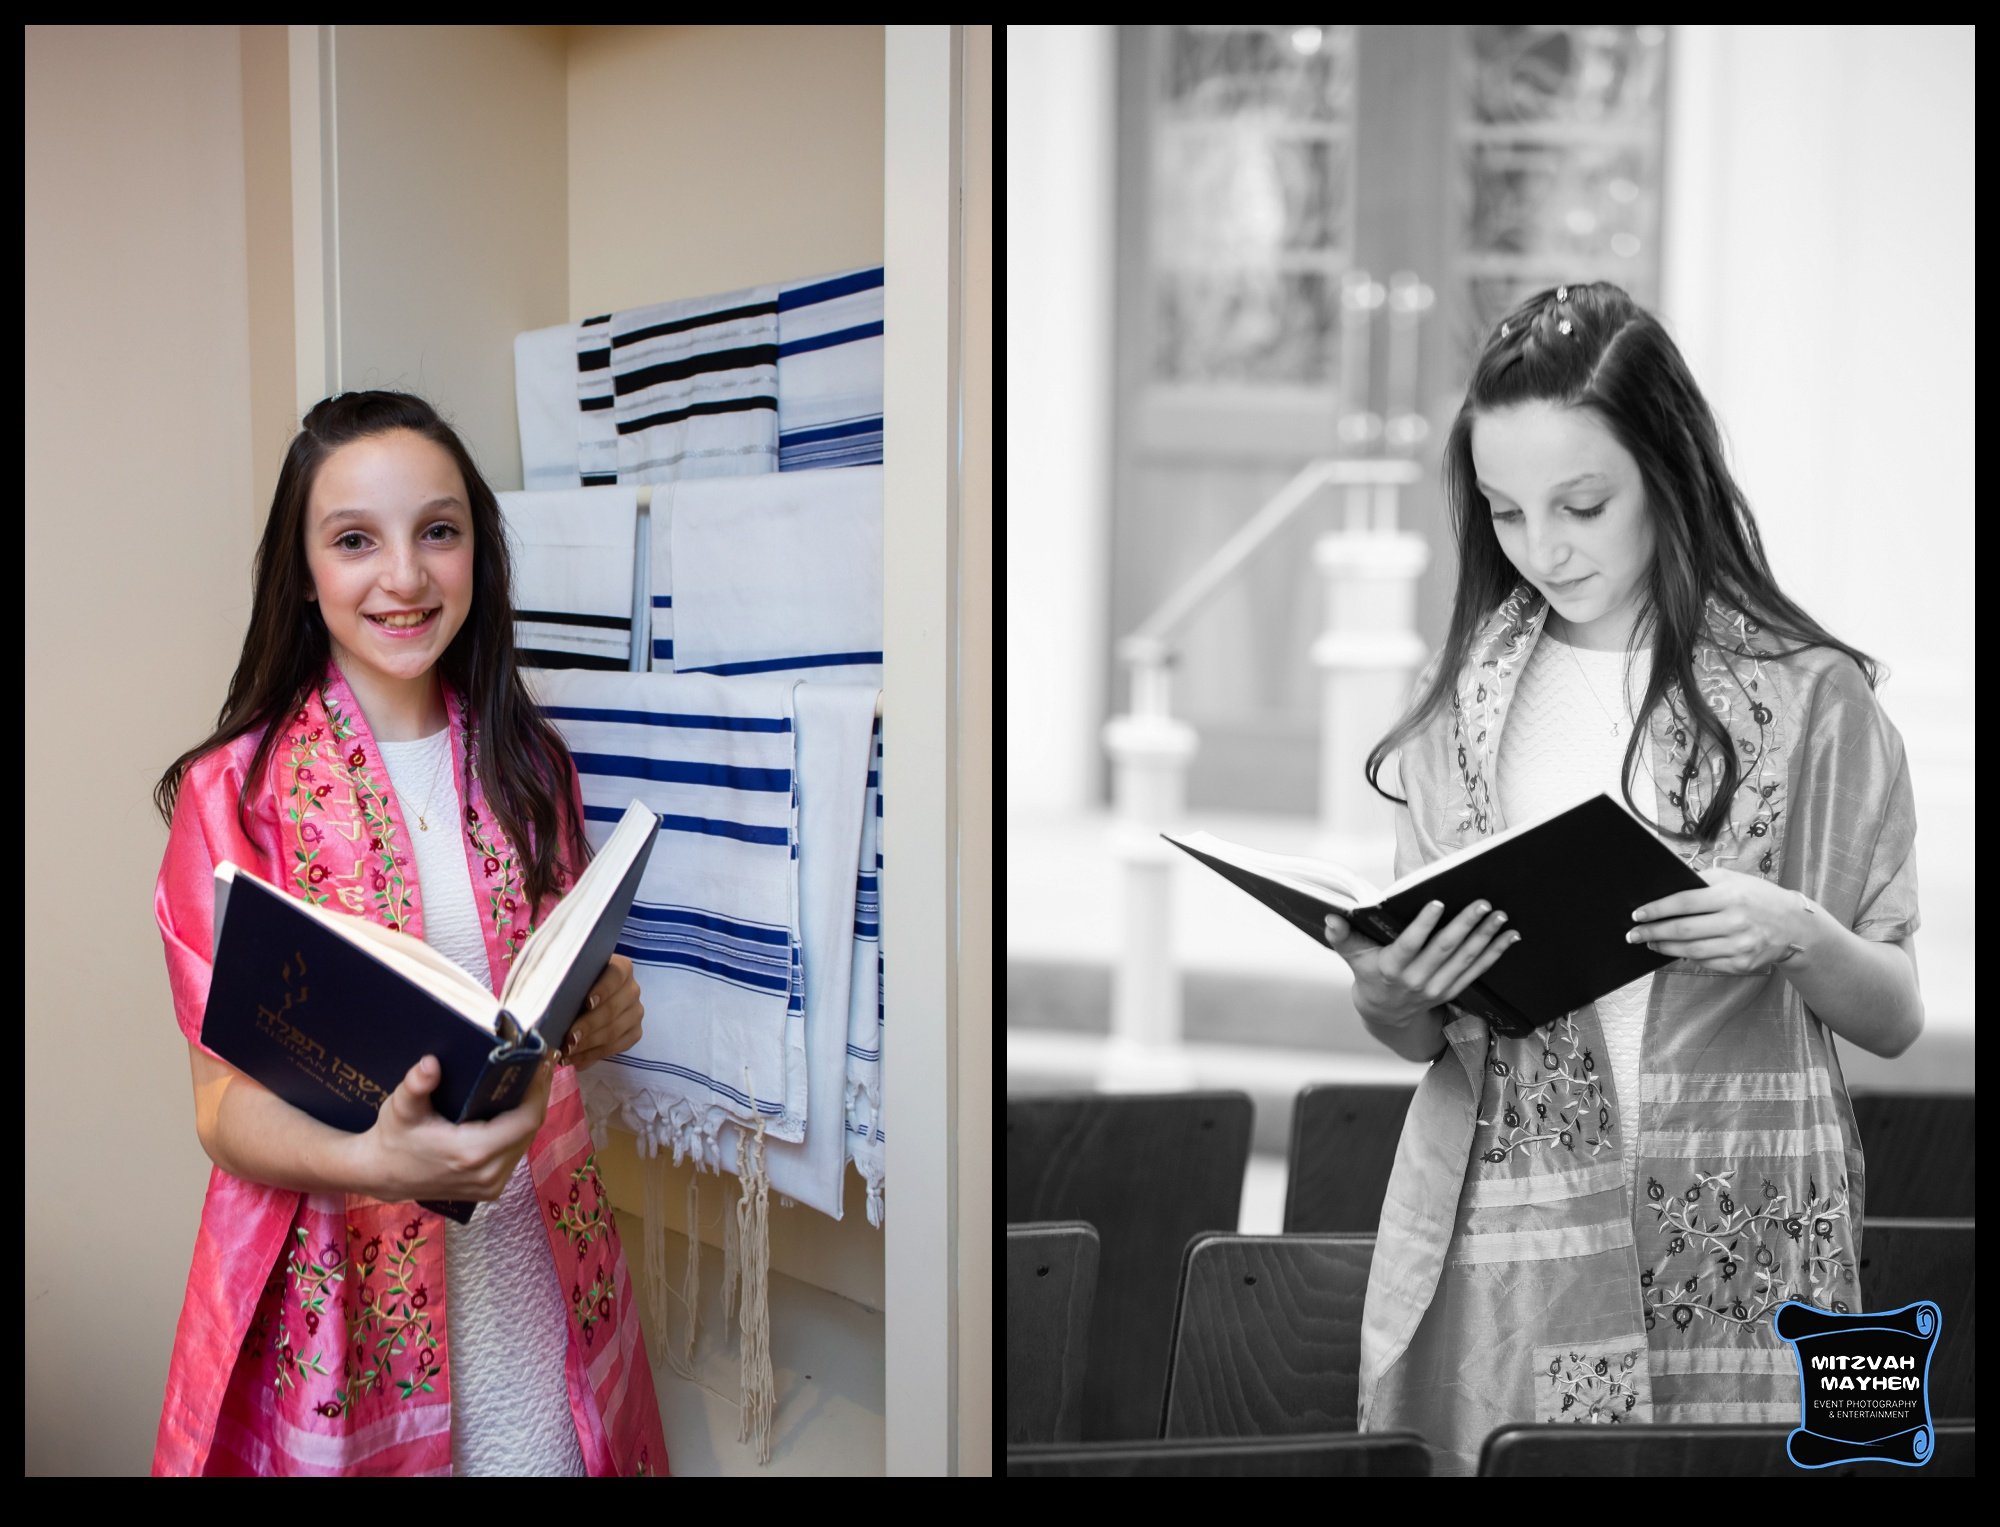 nj-bat-mitzvah-photography-6560.JPG